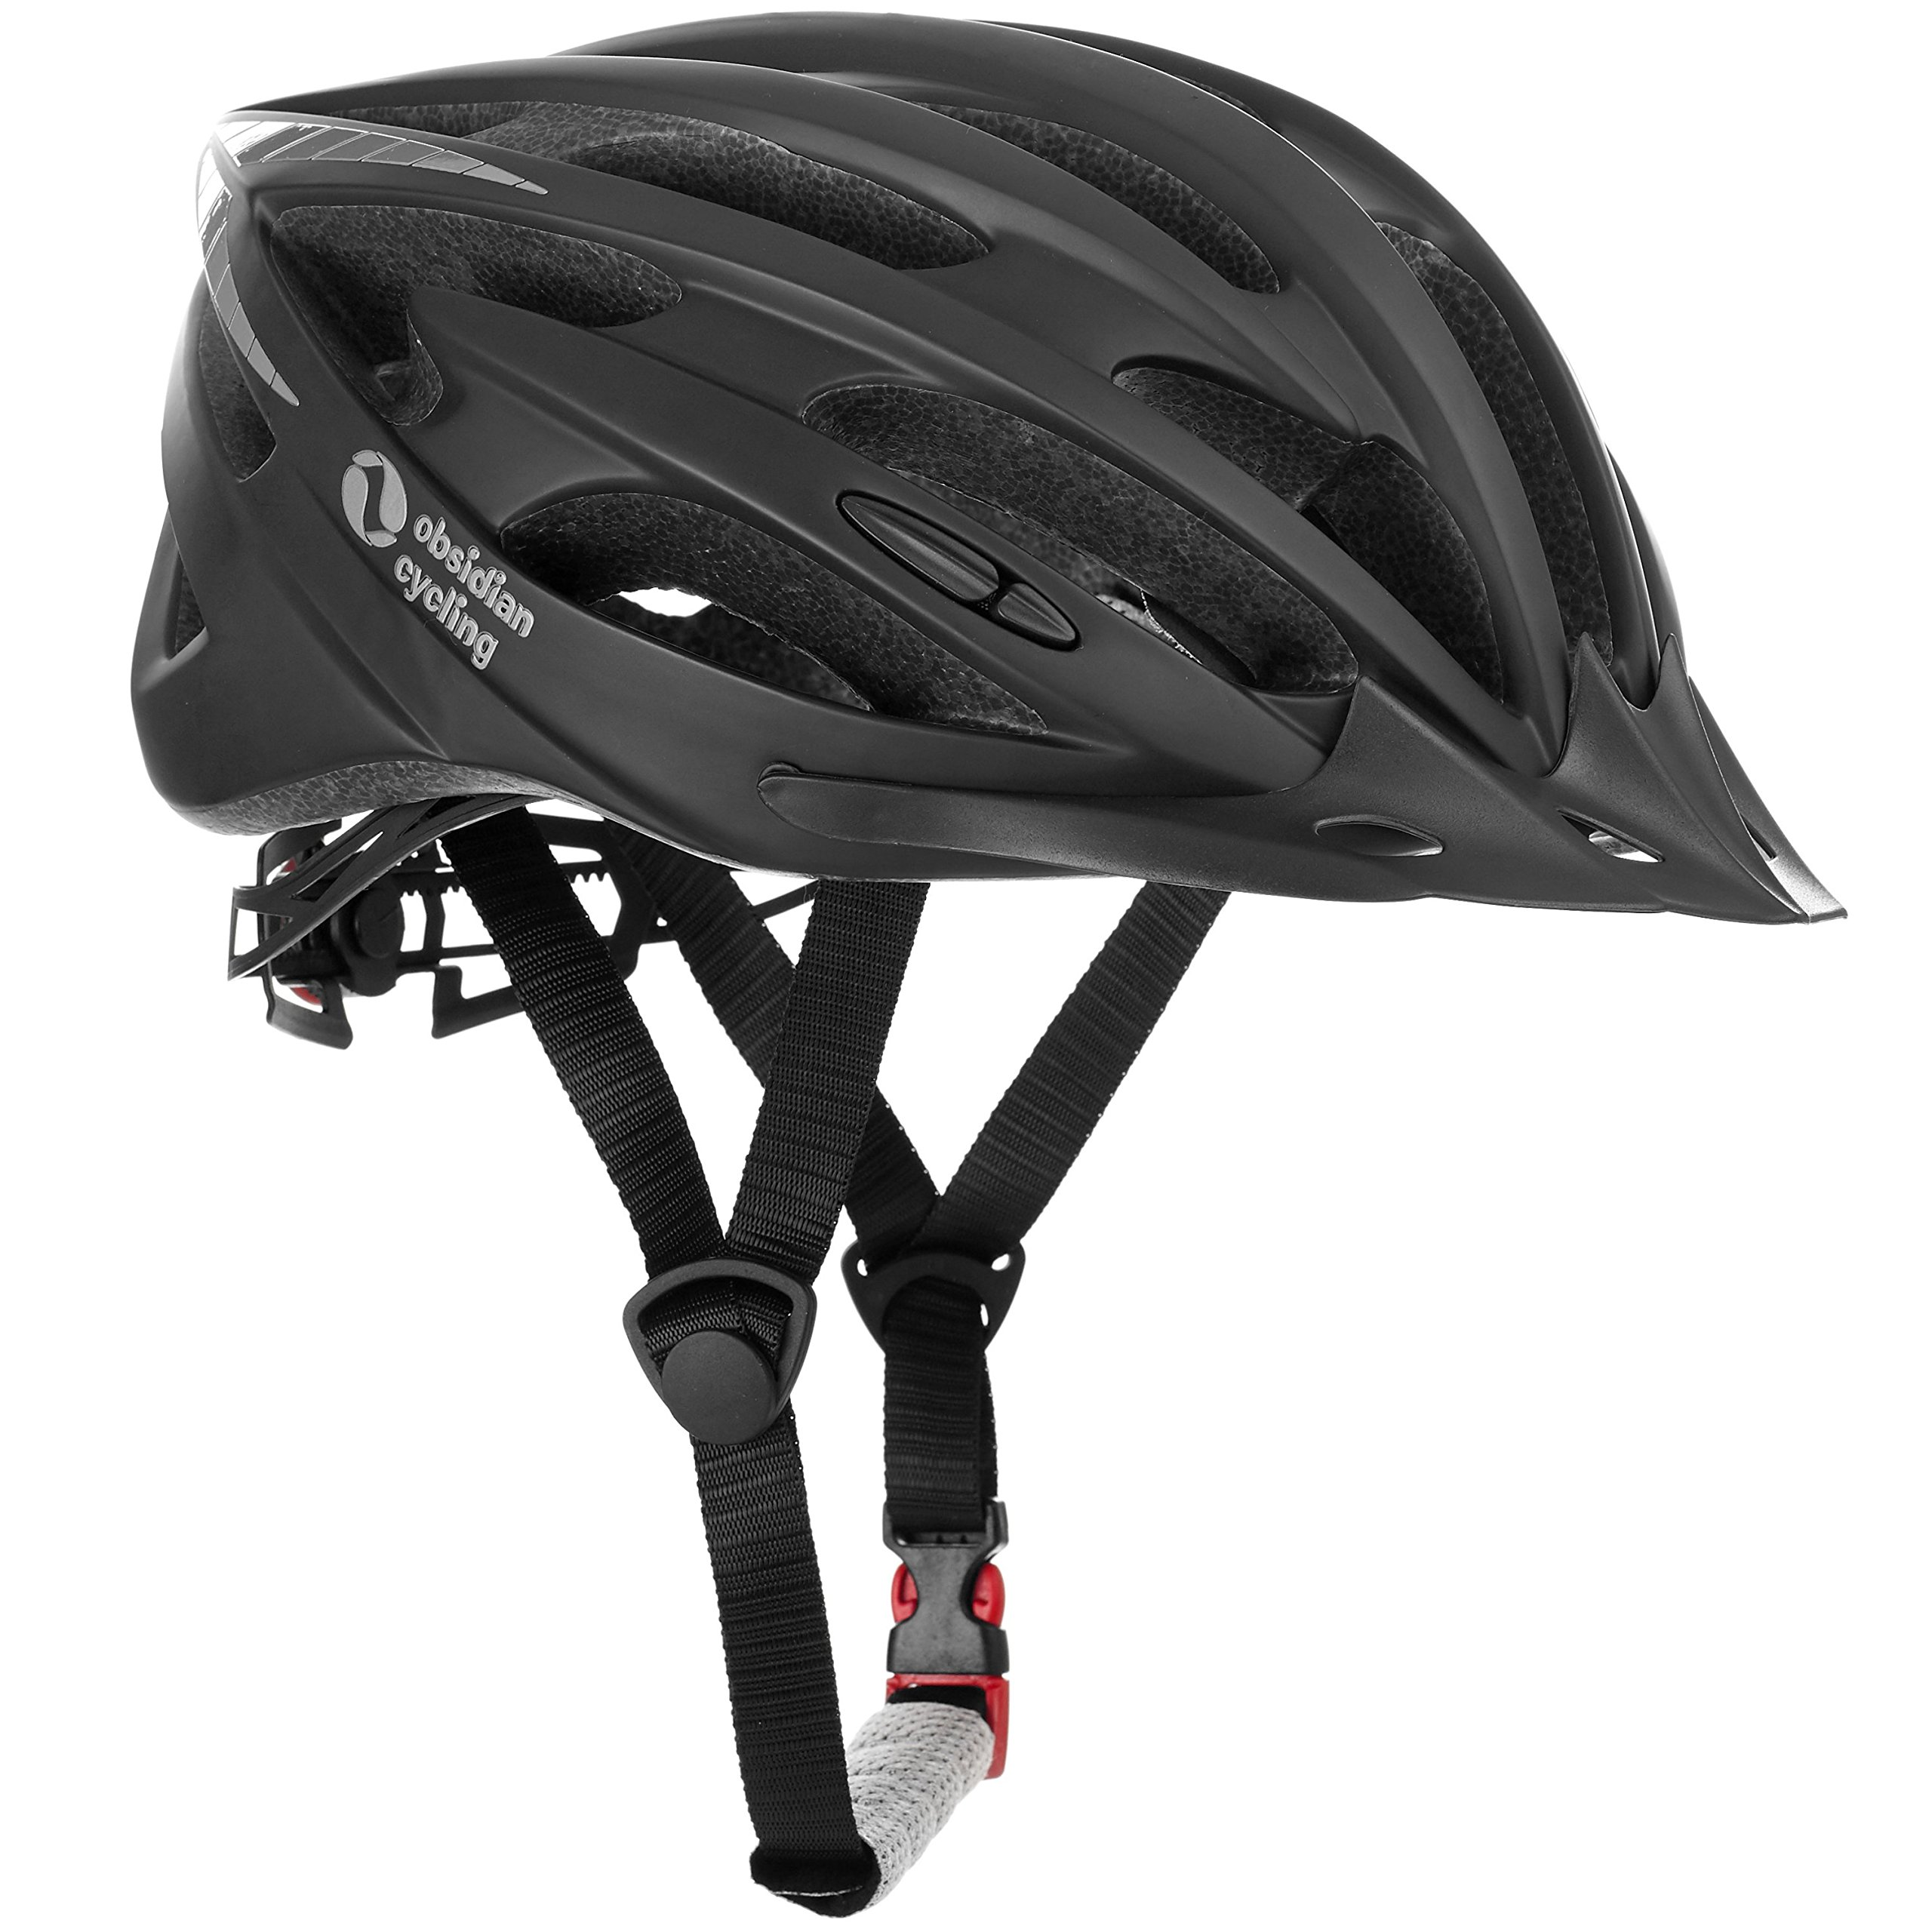 66c19d23fa4 TeamObsidian Premium Quality Airflow Bike Helmet with in-Molded Reinforcing  Skeleton for Added Protection - Adult Size